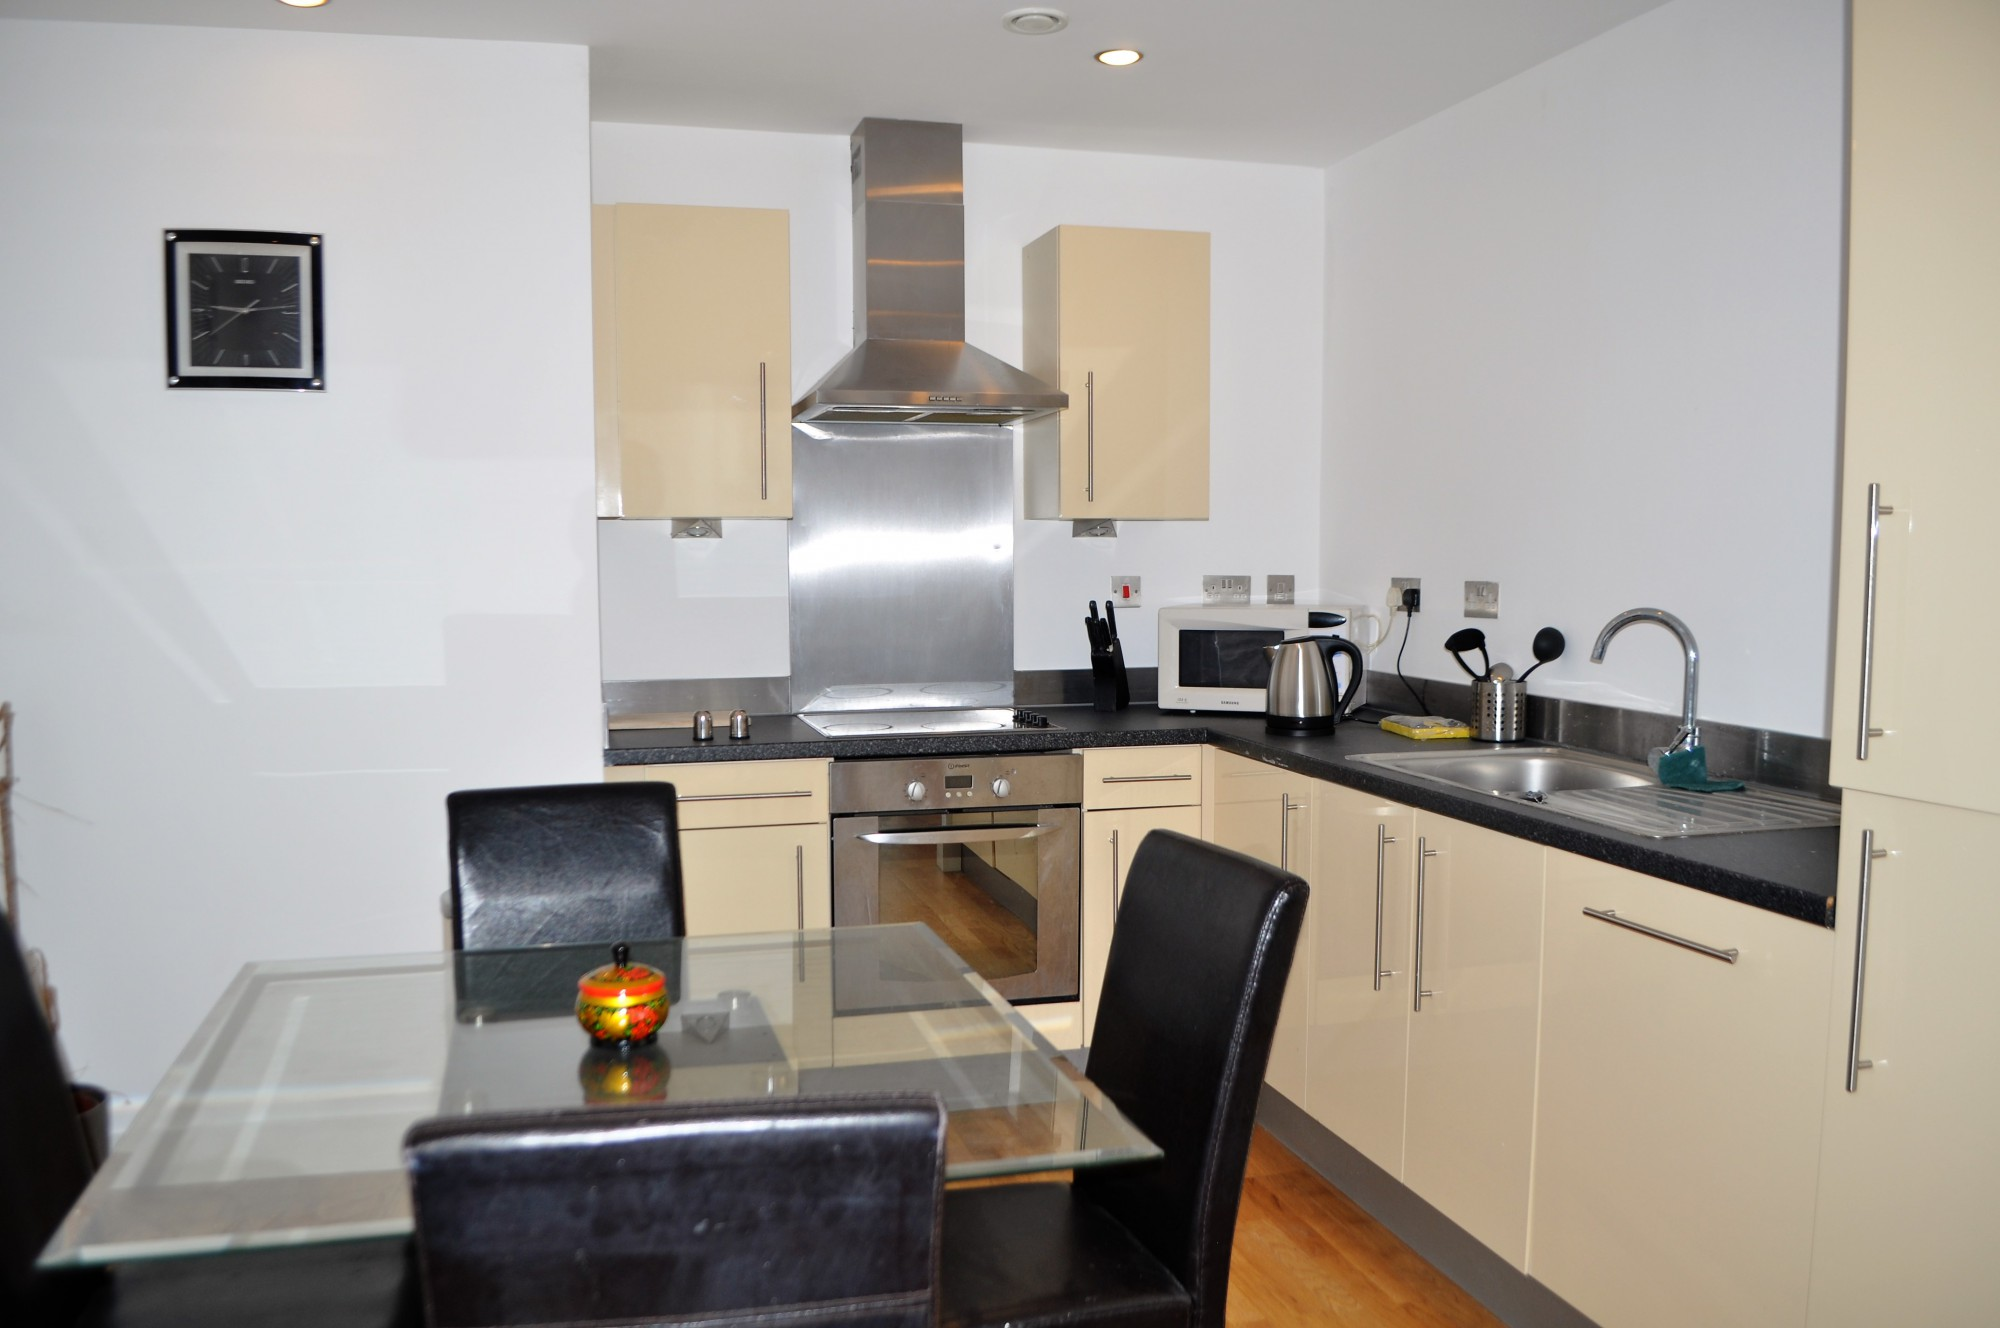 2 Bed Apartment Manchester 2 Bed Apartment 2 Advent Way Manchester City Centre M4 7aq Quay